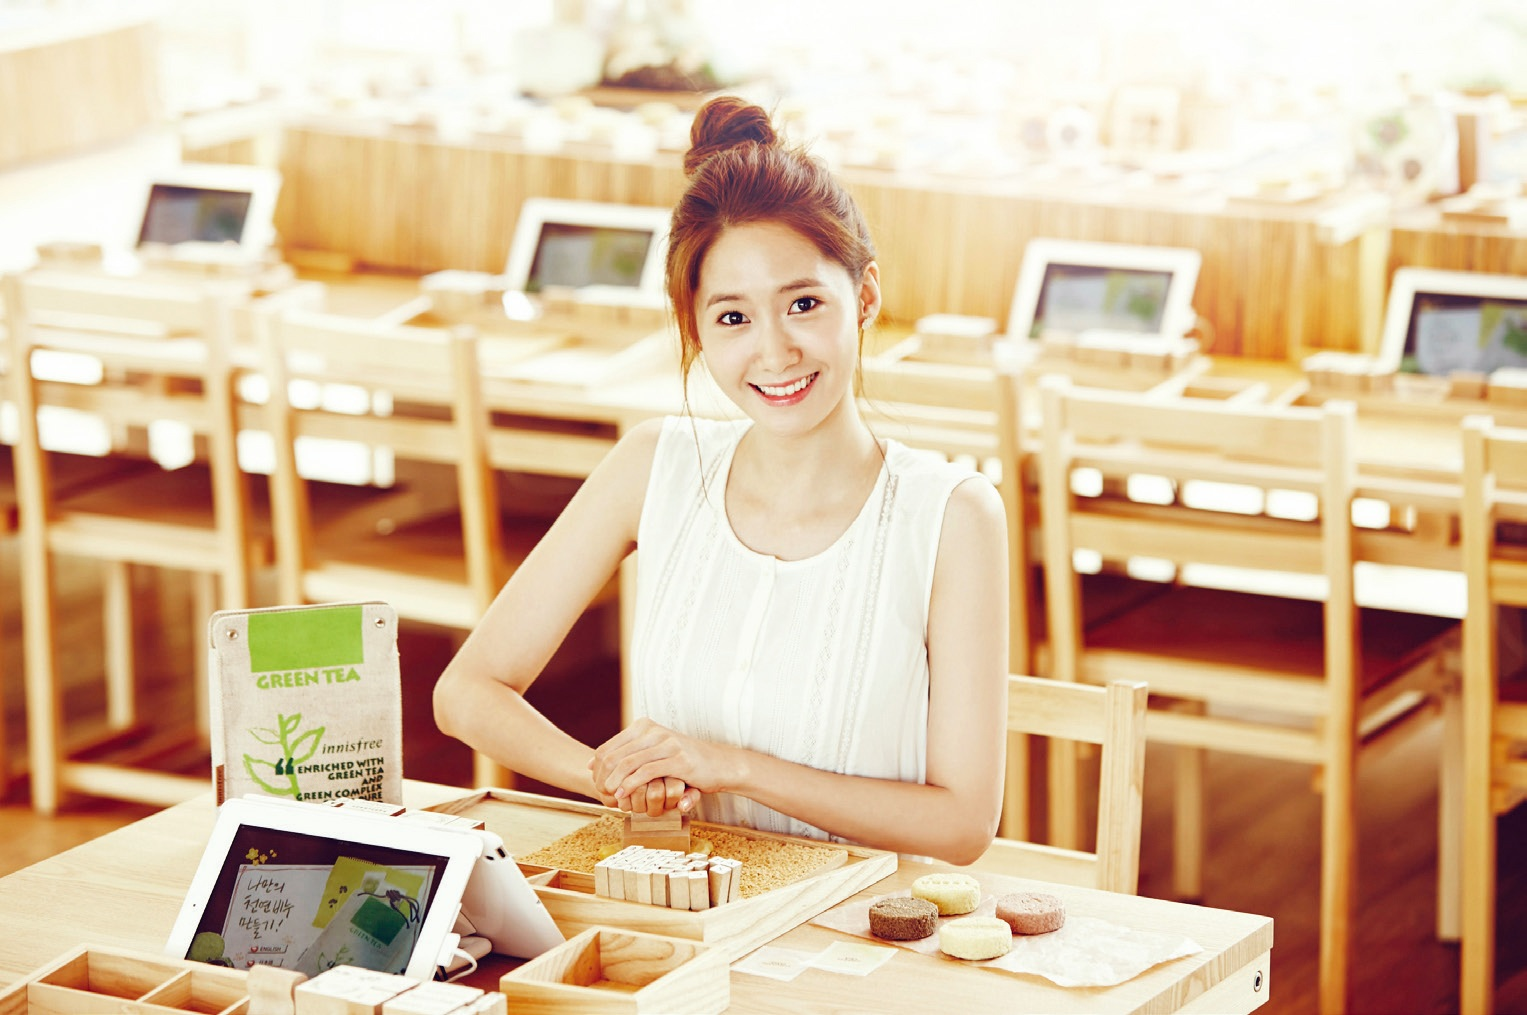 SNSD YoonA Innisfree Organic Green Cafe Wallpaper HD Hot Sexy Beauty 1527x1015